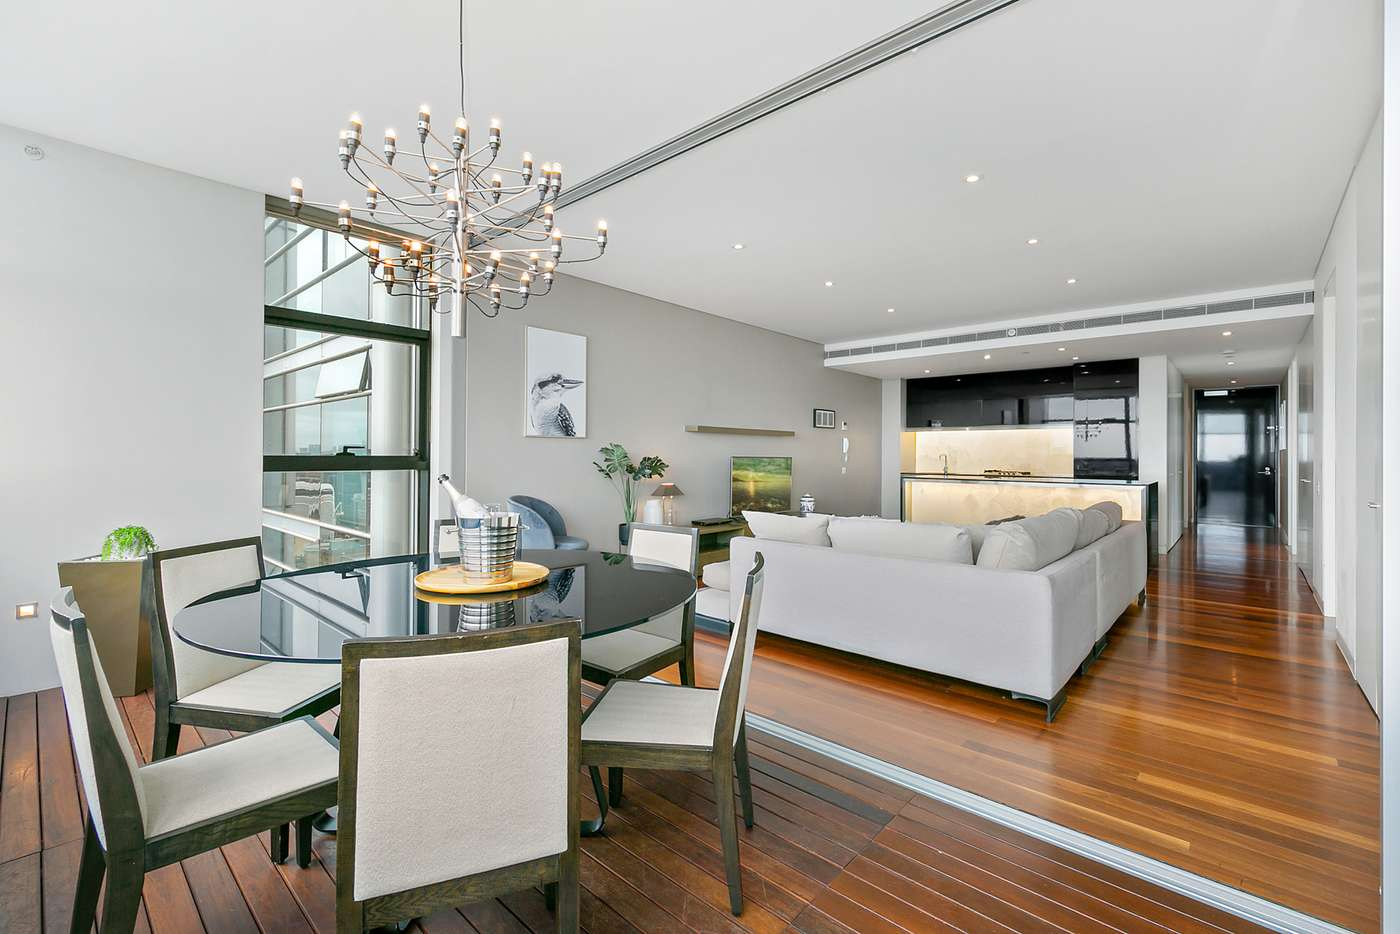 Main view of Homely apartment listing, 4508/101 Bathurst Street, Sydney NSW 2000